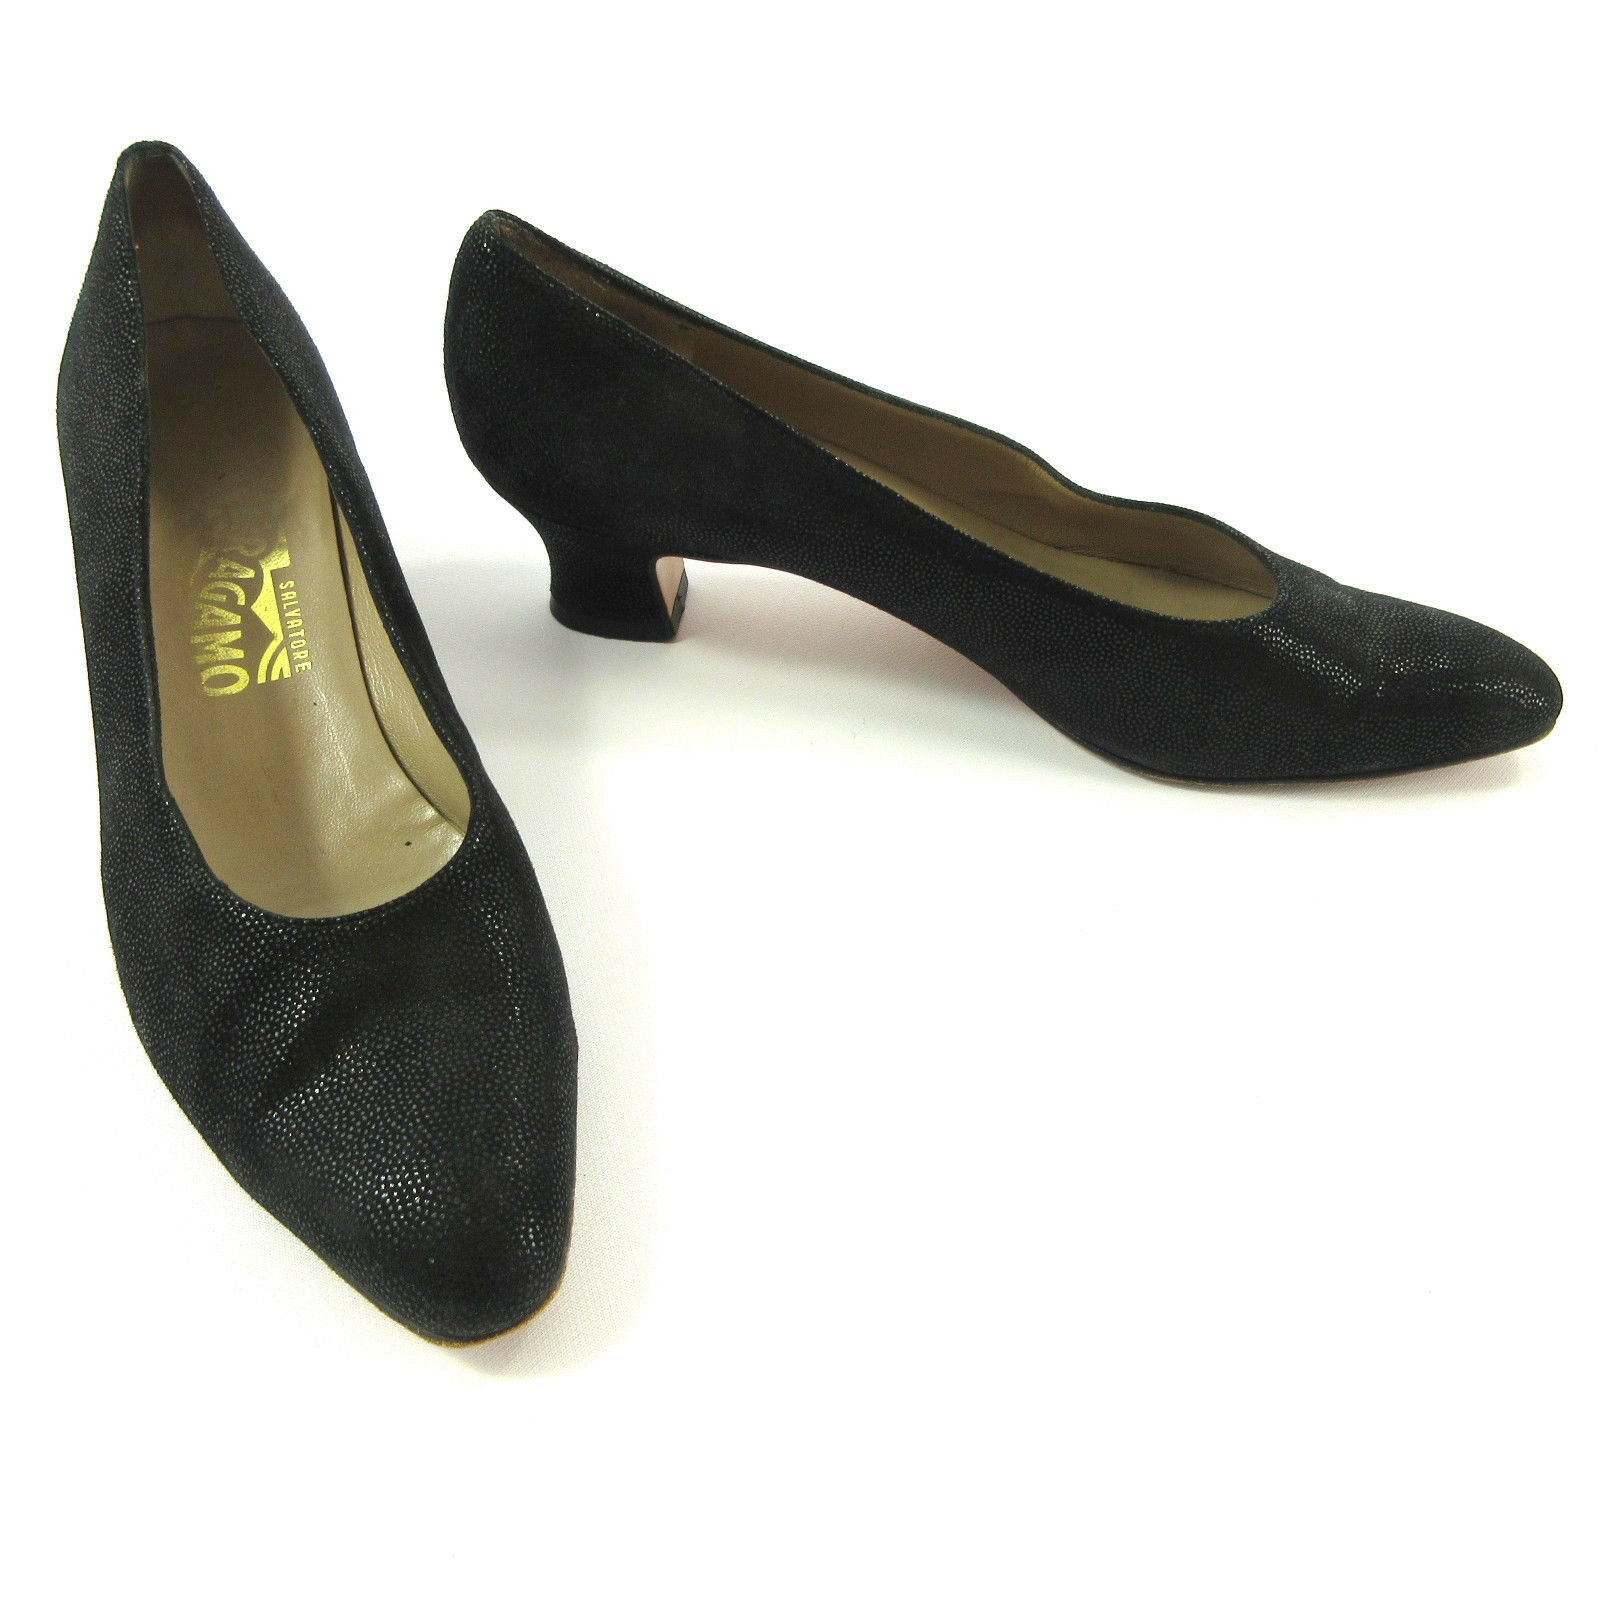 Salvatore Ferragamo Shoes Women 9 AAA Black Suede Shimmer Textured Heels Heels Textured Pumps 1a5f31